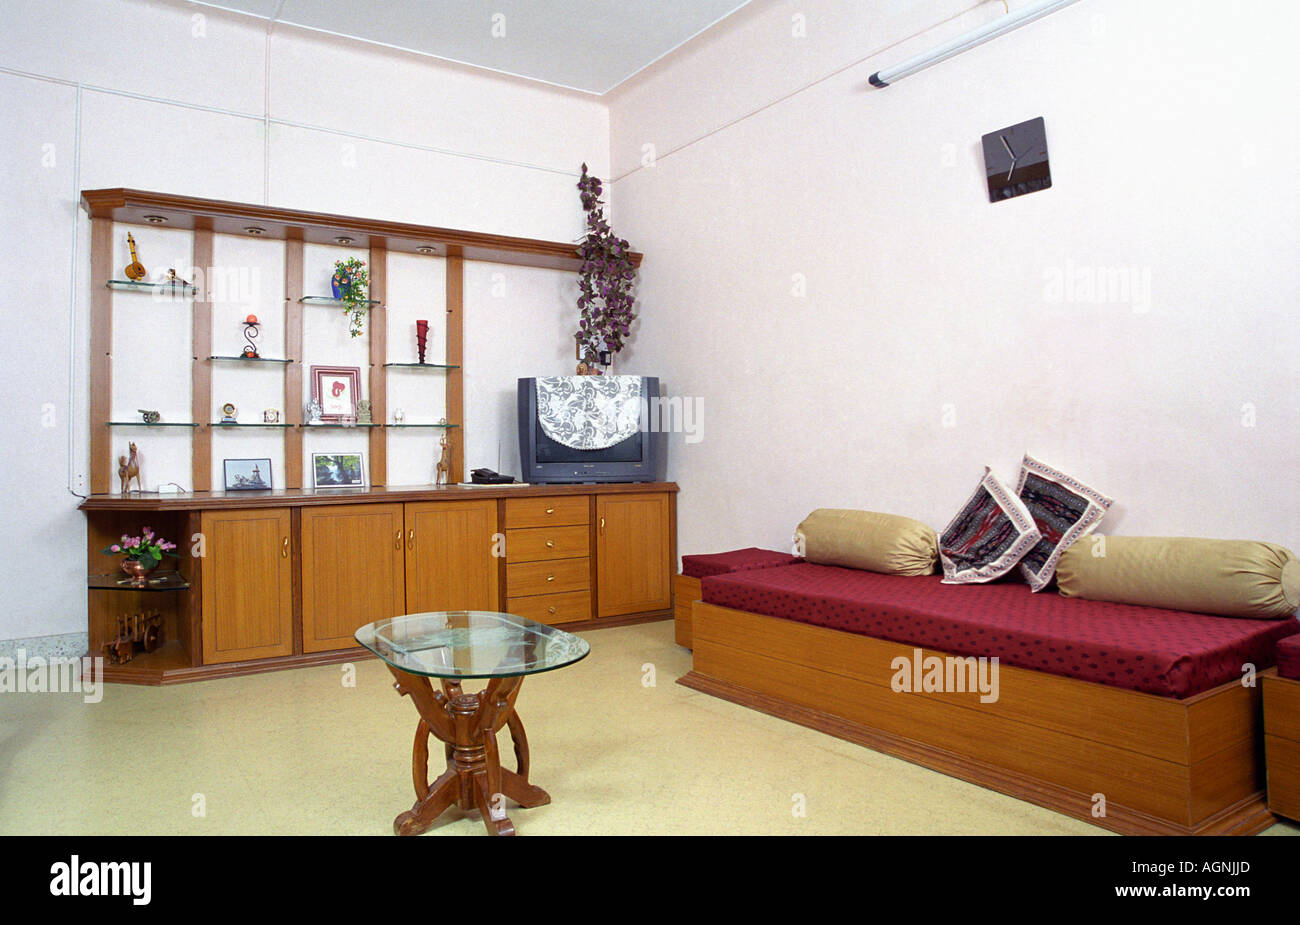 Indian Living Room Interior A Living Room With Tradition Indian Seating Arrangement